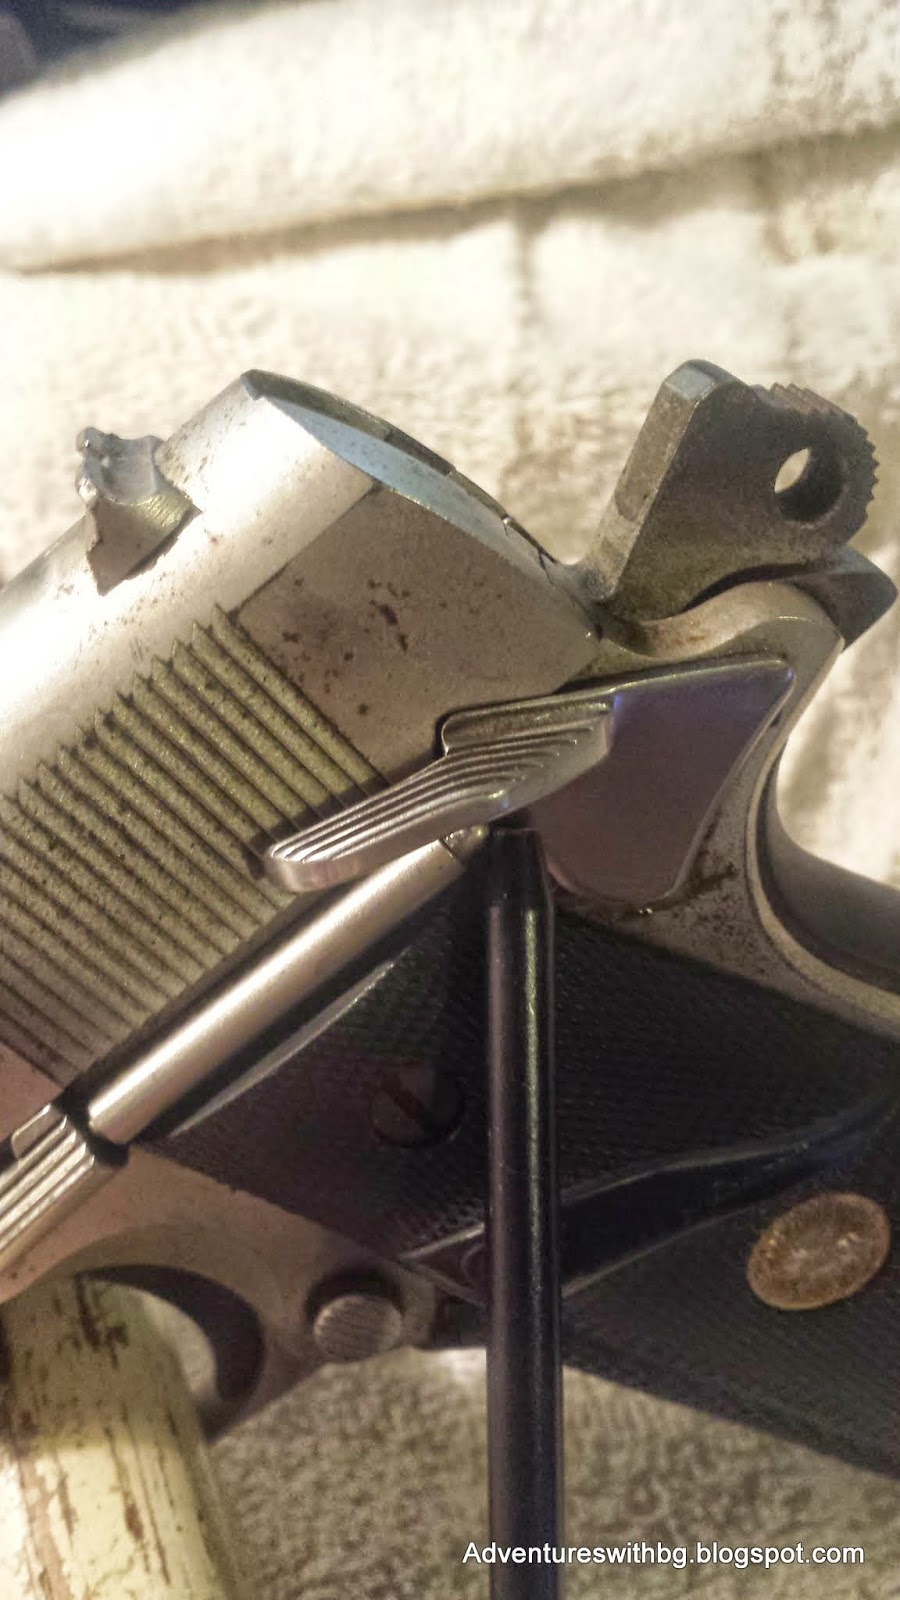 The mechanical safety on a pistol